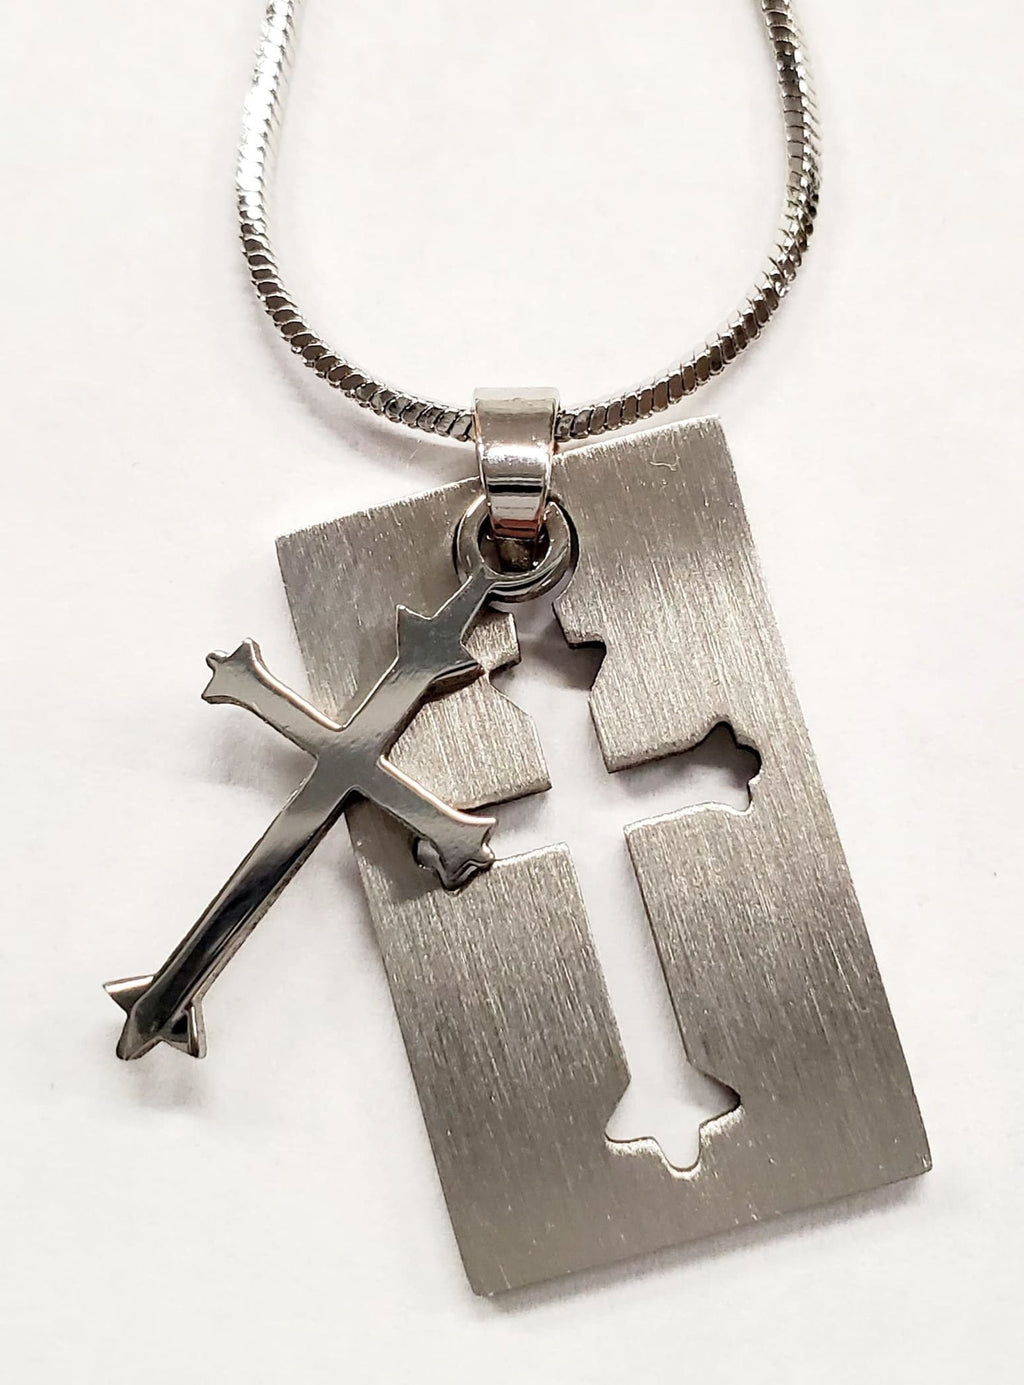 Stainless Steel Cross Inside Another Cross Necklace